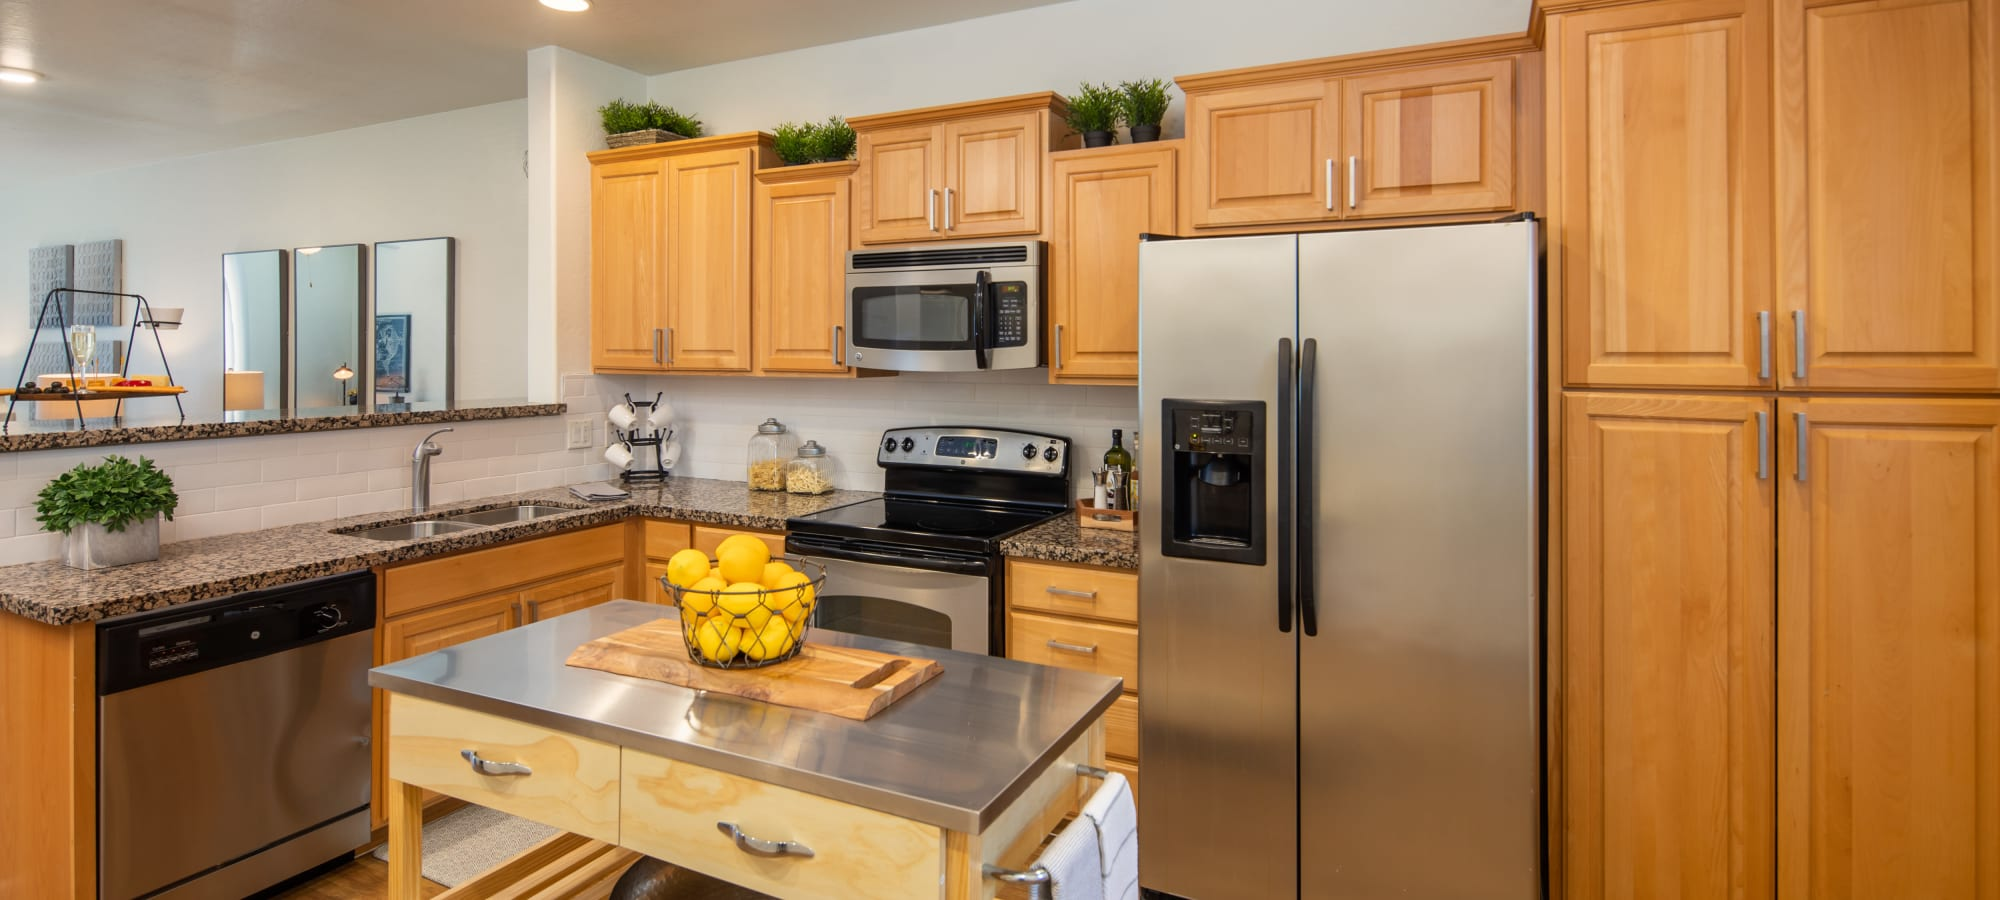 Kitchen with stainless steel appliances at The Fleetwood in Tempe, Arizona